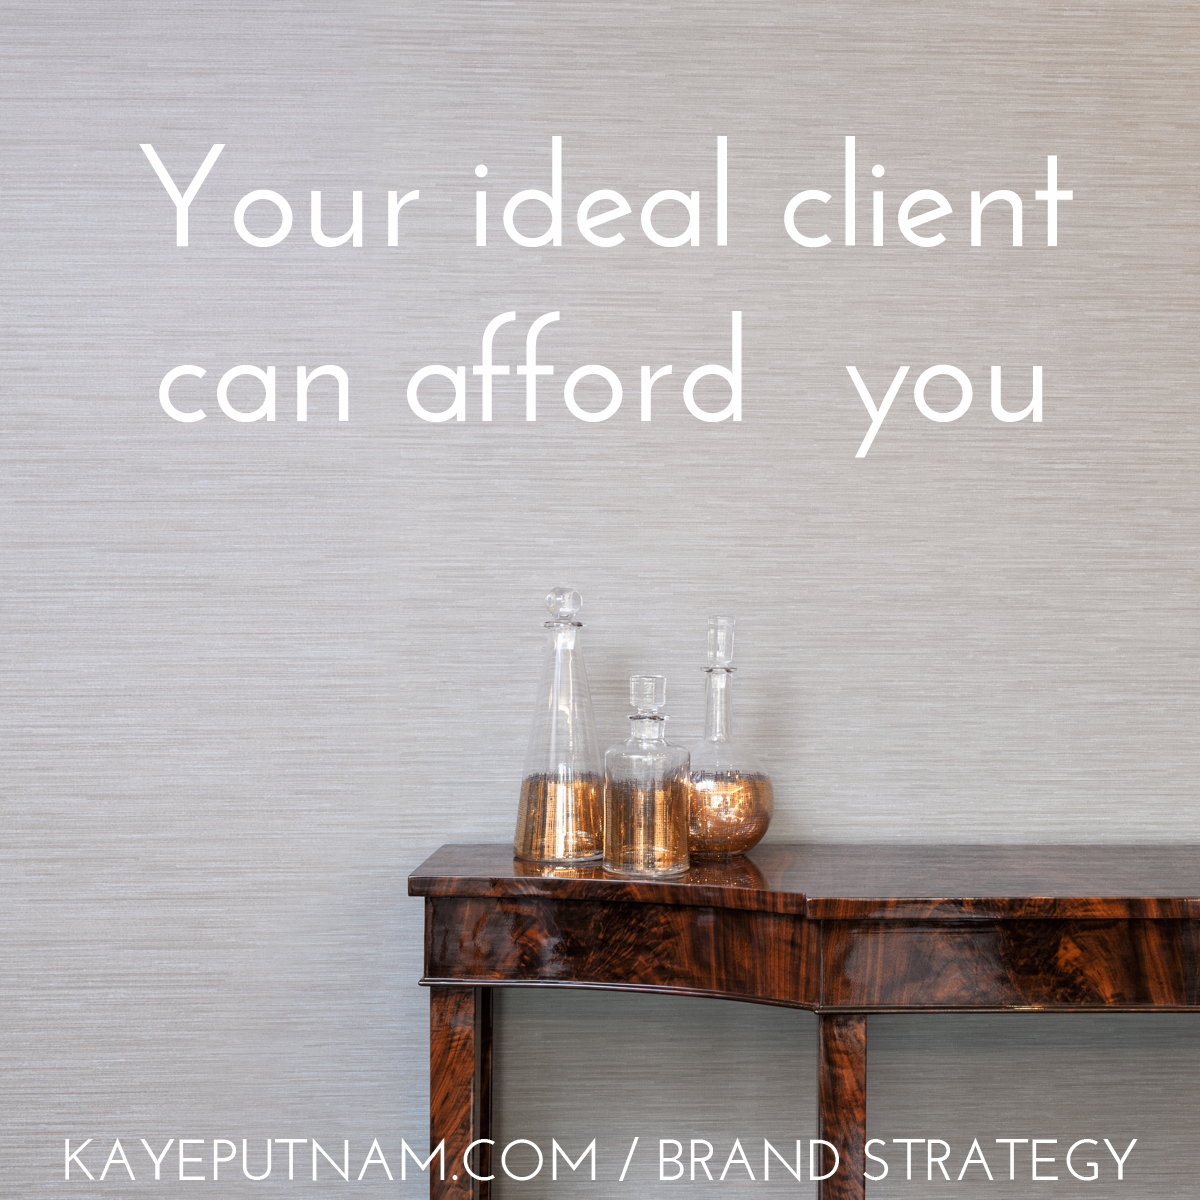 Your ideal client can afford you. #InDemandBrand